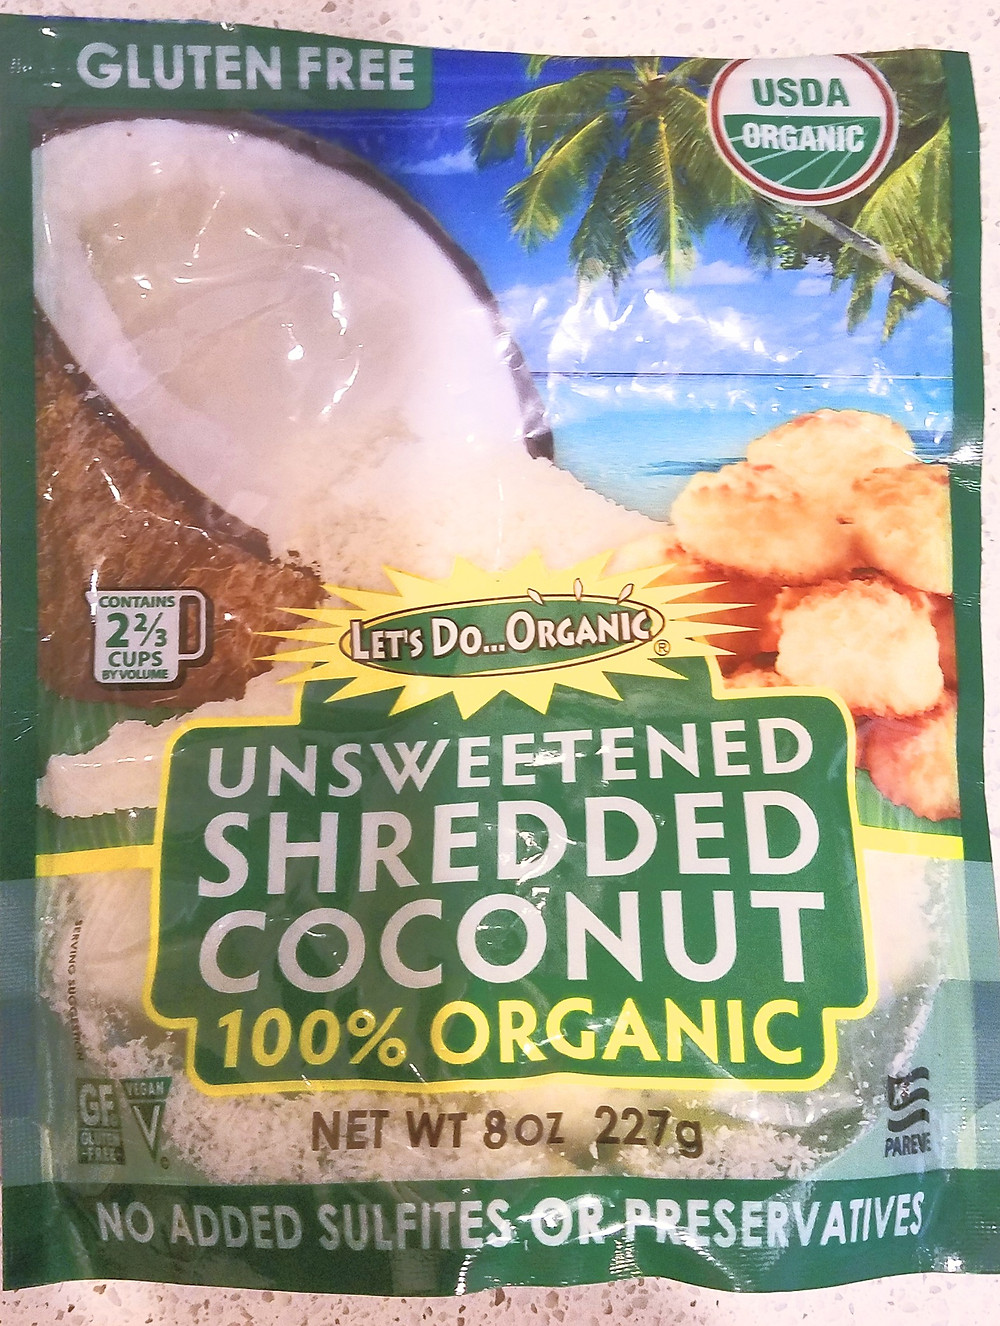 Photo of unsweetened shredded coconut